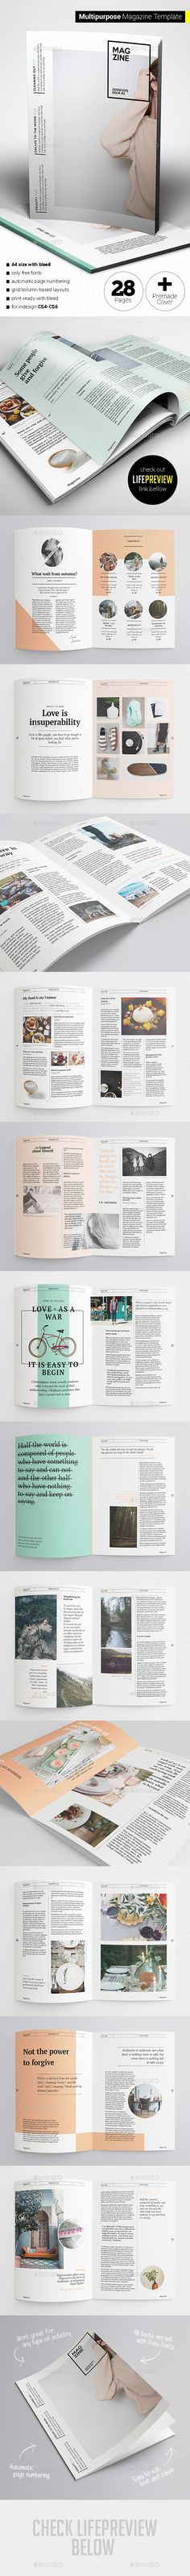 Multipurpose Magazine 28 Pages Template InDesign INDD #design Download…